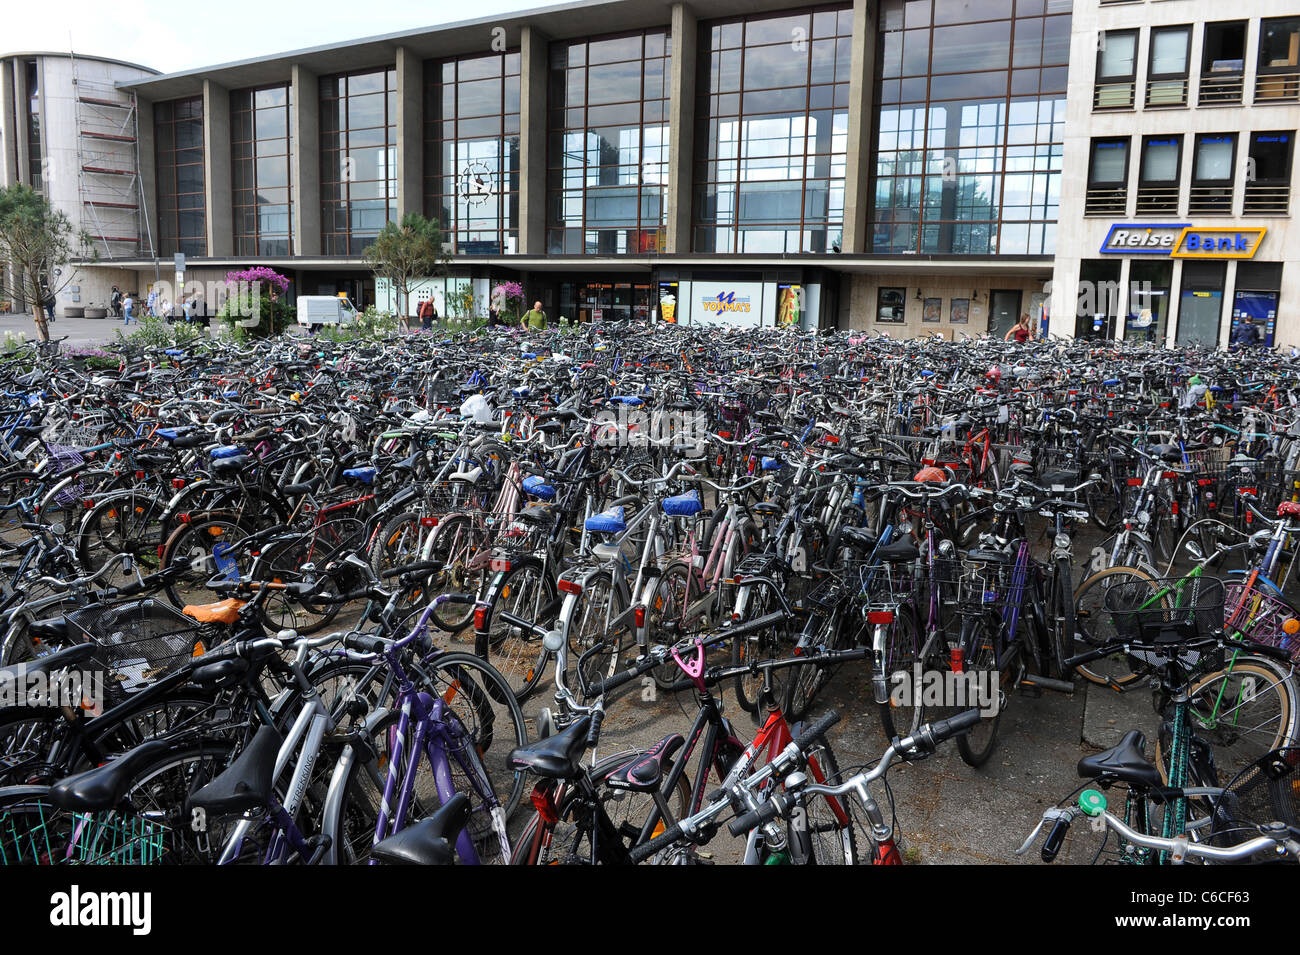 Thousands of Bicycles parked at Heidelberg Railway Station Baden-Württemberg Germany Deutschland - Stock Image